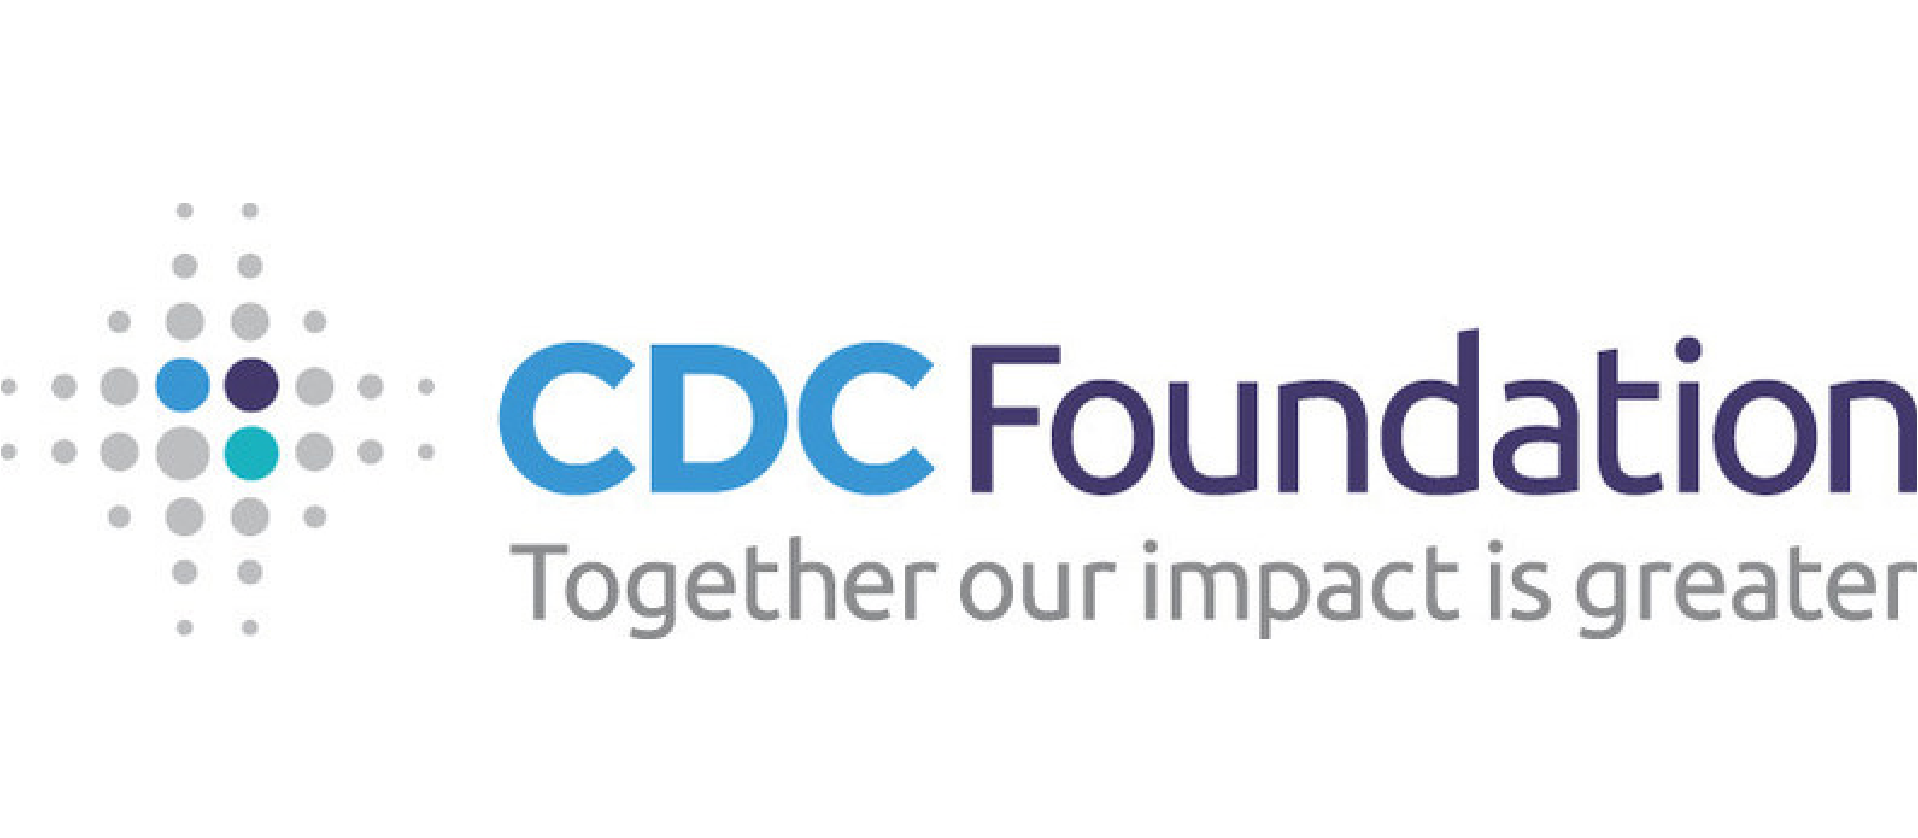 CDC Foundation_4-06.png